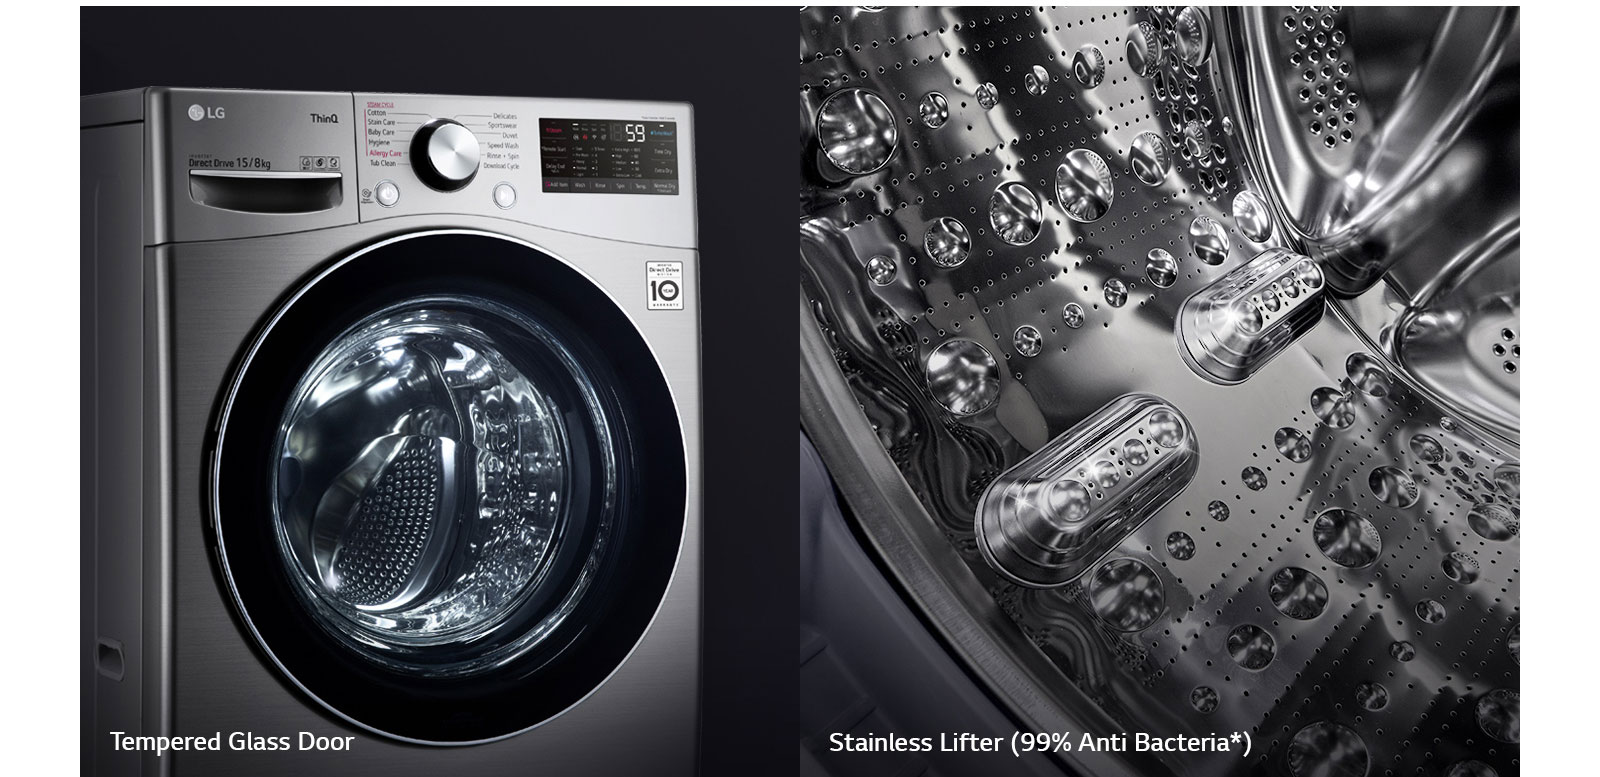 One image shows the front of the washing machine front load washer bringing focus to the tempered glass door. Second image shows the interior of the drum with focus on the stainless steel design.